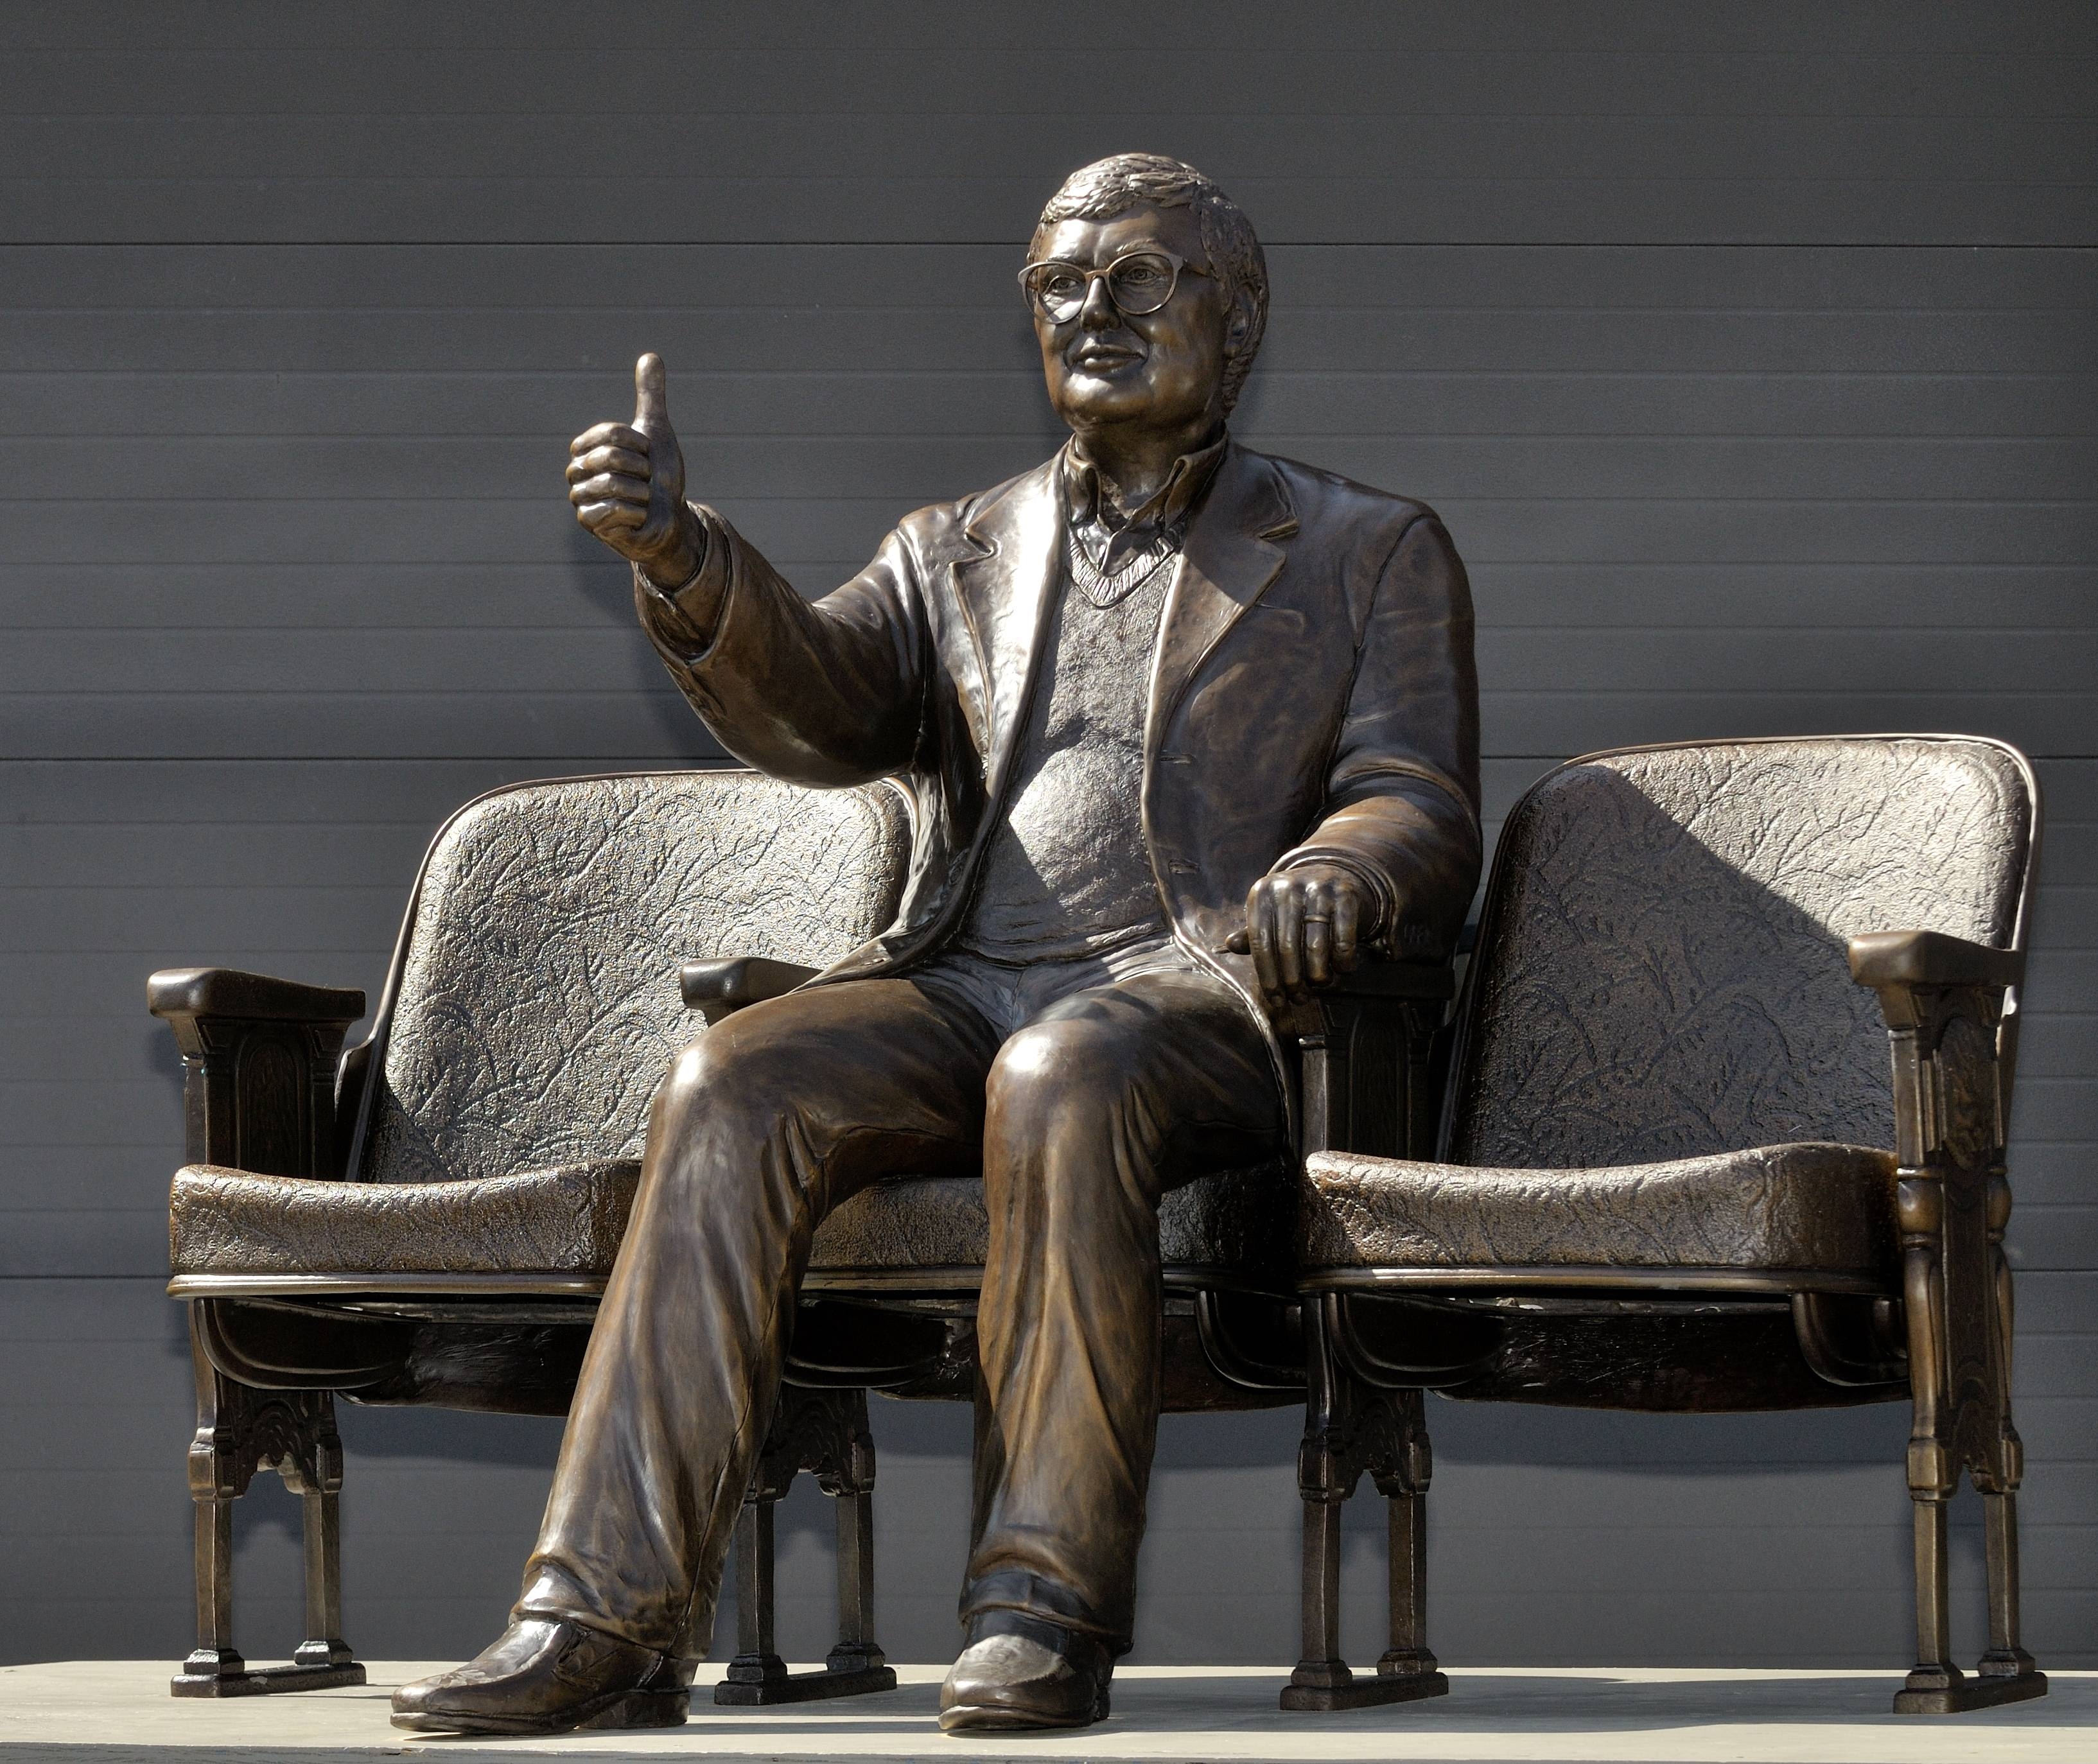 This bronze statue of Pulitzer Prize-winning film critic Roger Ebert will be unveiled Thursday outside the Virginia Theatre in Champaign where Ebert held his annual film festival. Ebert died in April 2013.